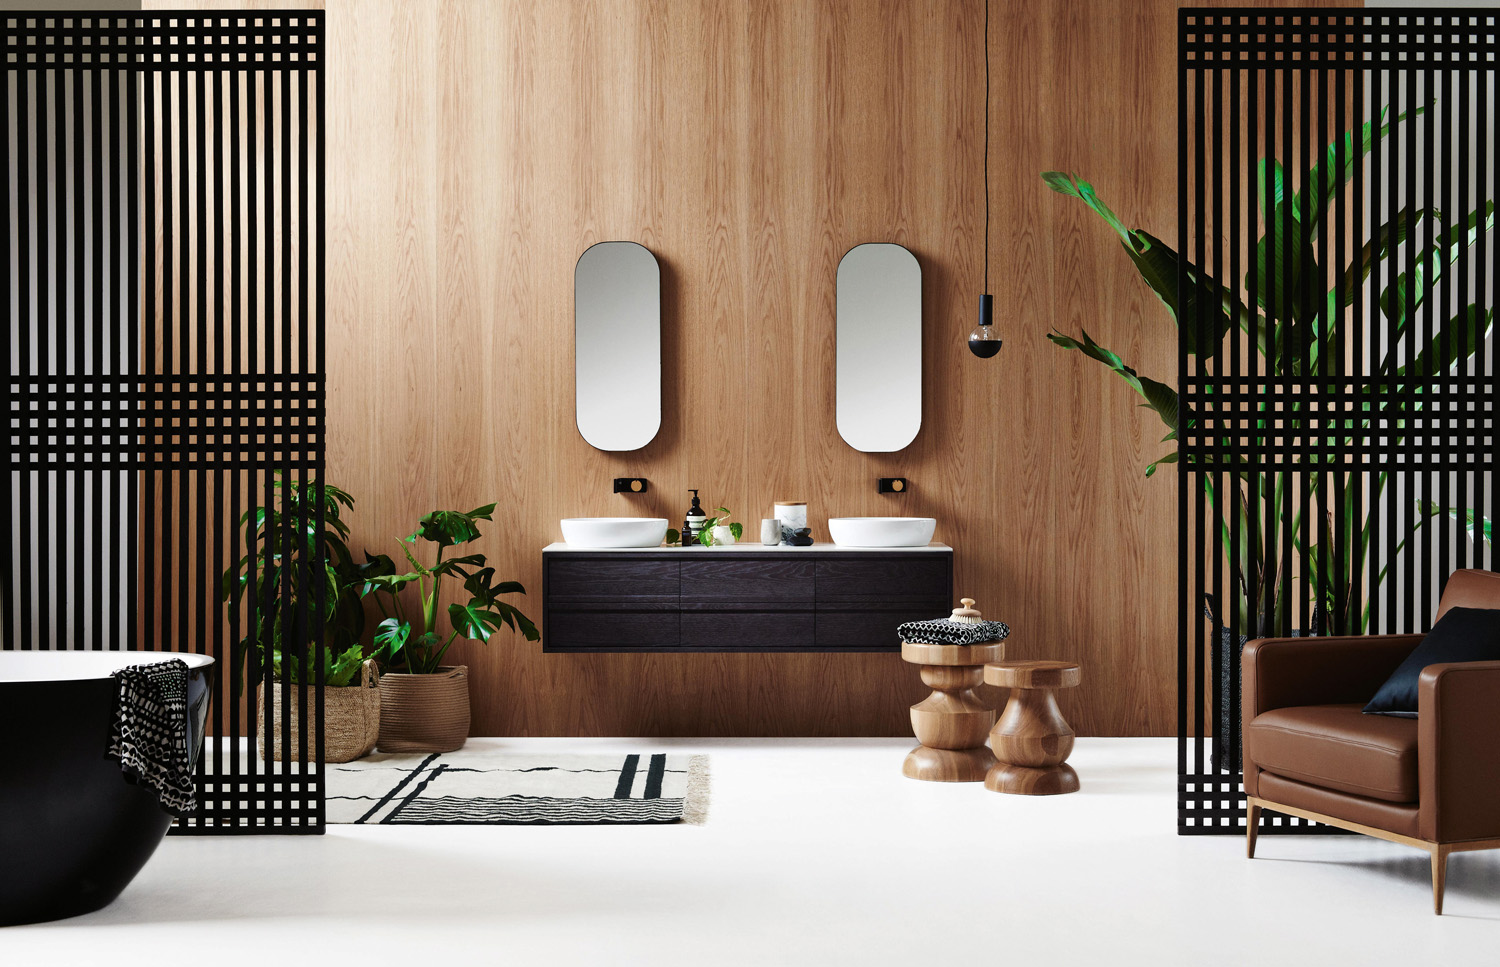 ISSY Z8 6 Drawer Vanity 1500 and ISSY Z1 Oval Mirror 380 (in situ front view)